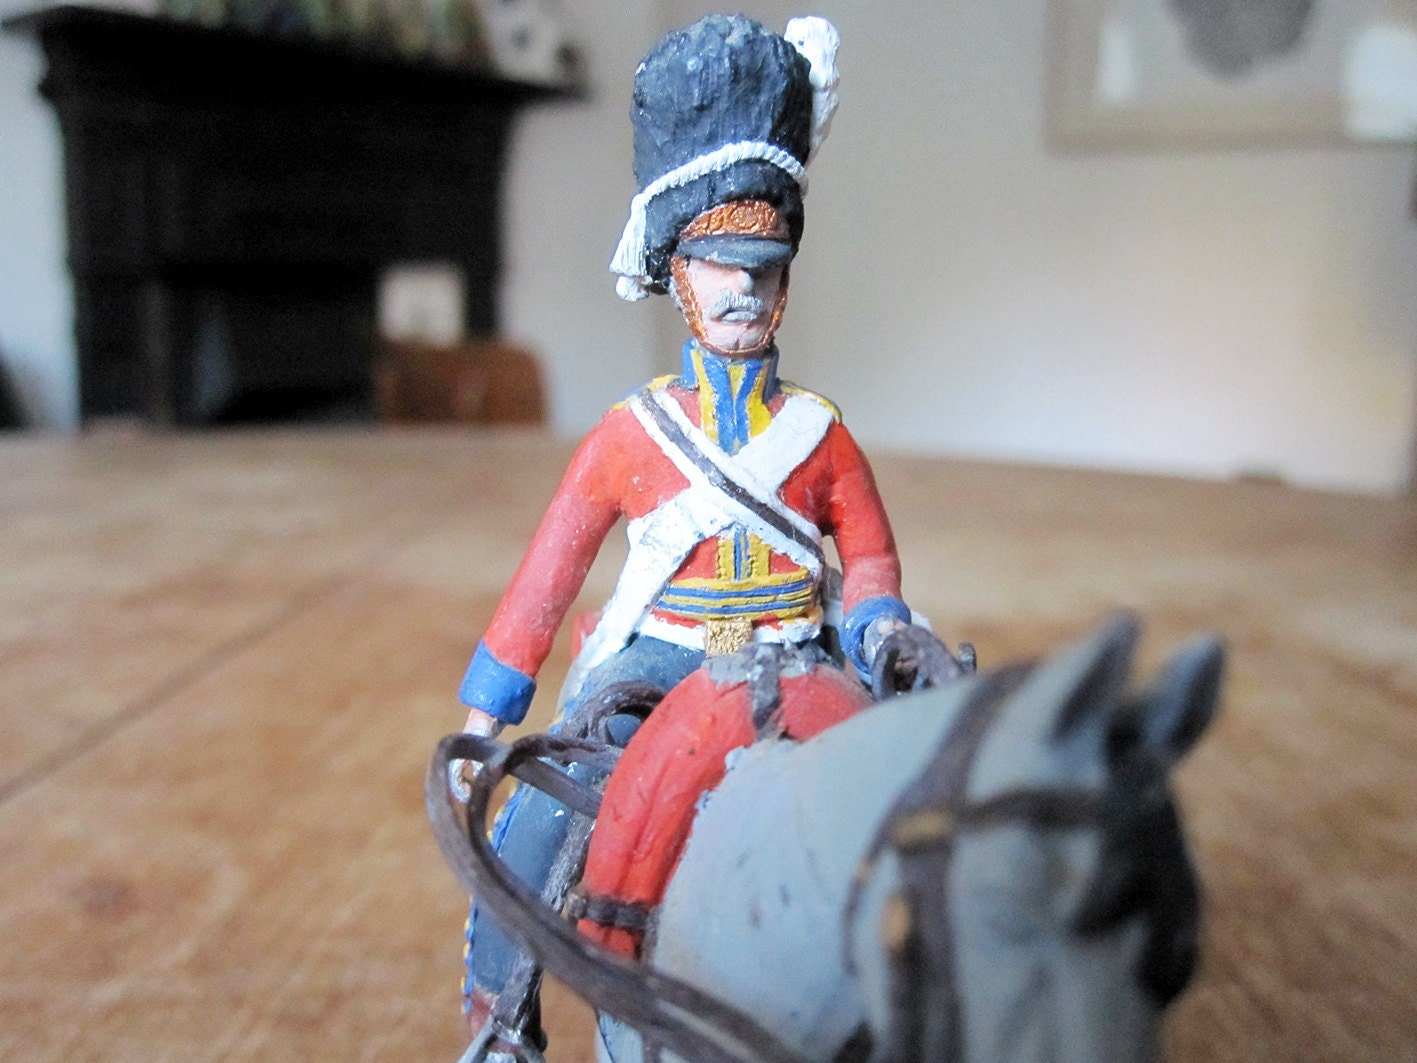 Antique Napoleonic Era British Army Soldier on Horse Toy Figurine